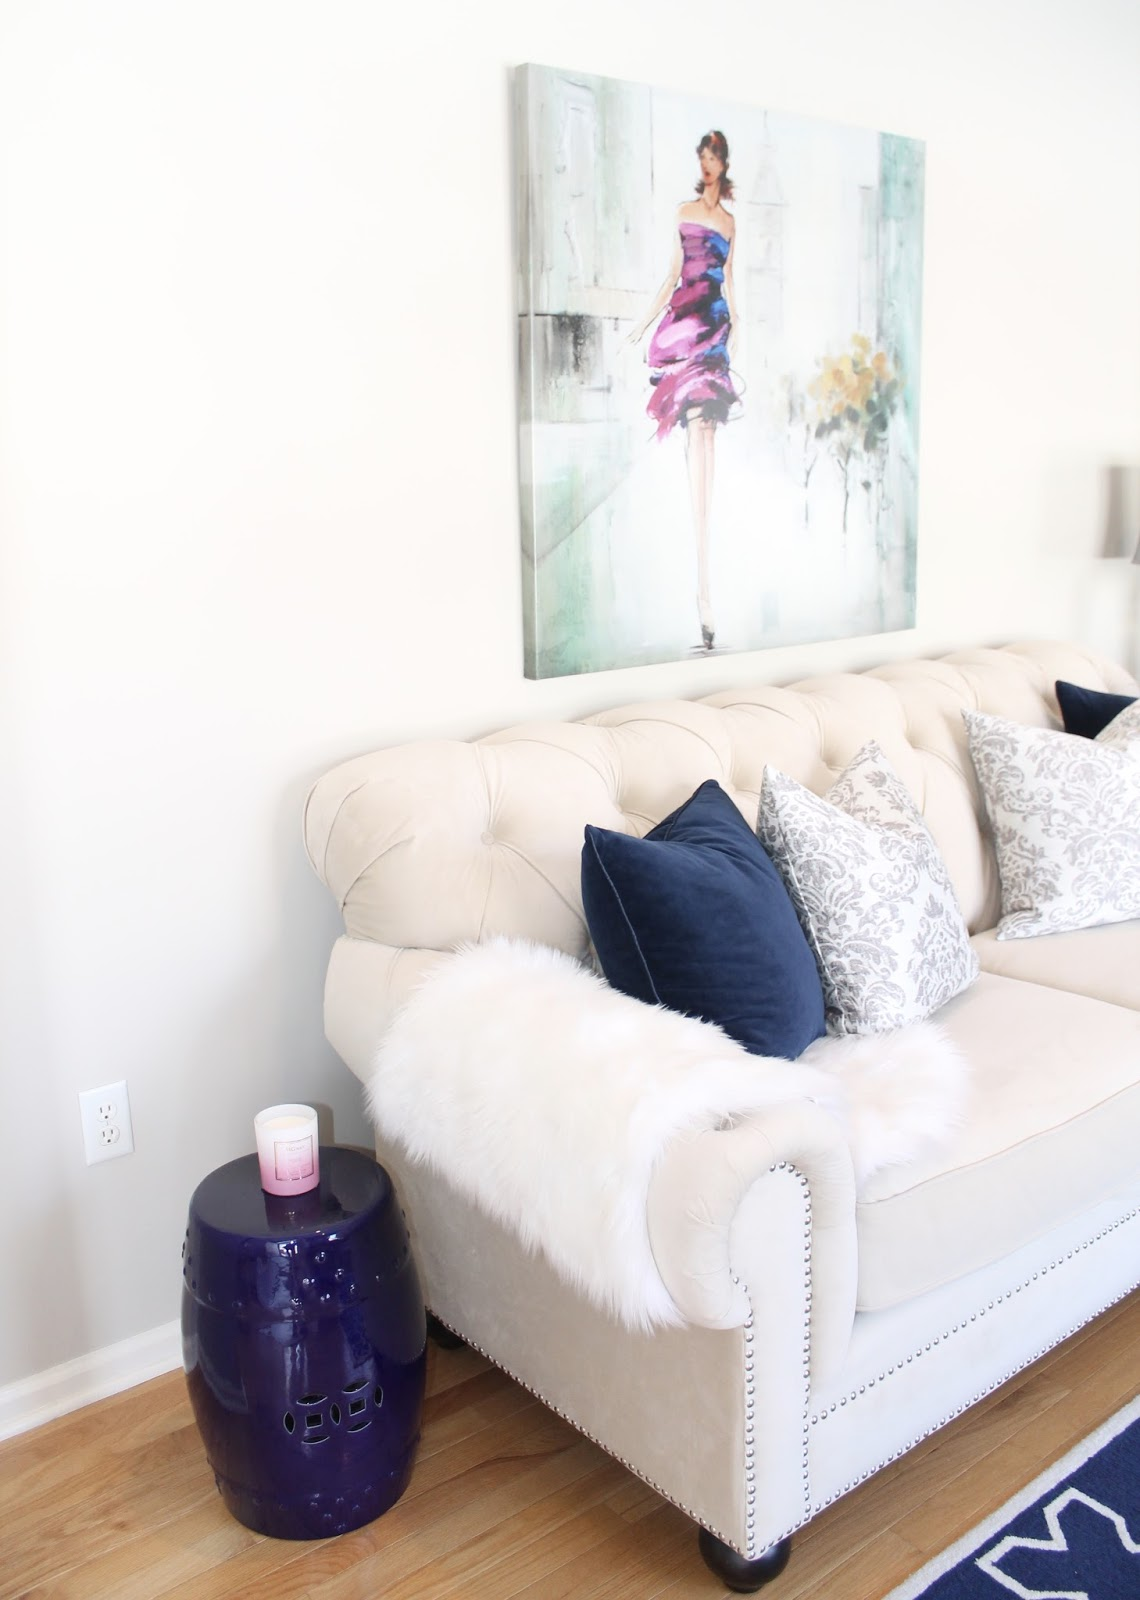 This Is The Sofa That Inspired My Original Post! Unfortunately, Bobu0027s Discount  Furniture No Longer Sells My Beautiful, $550 Couch.